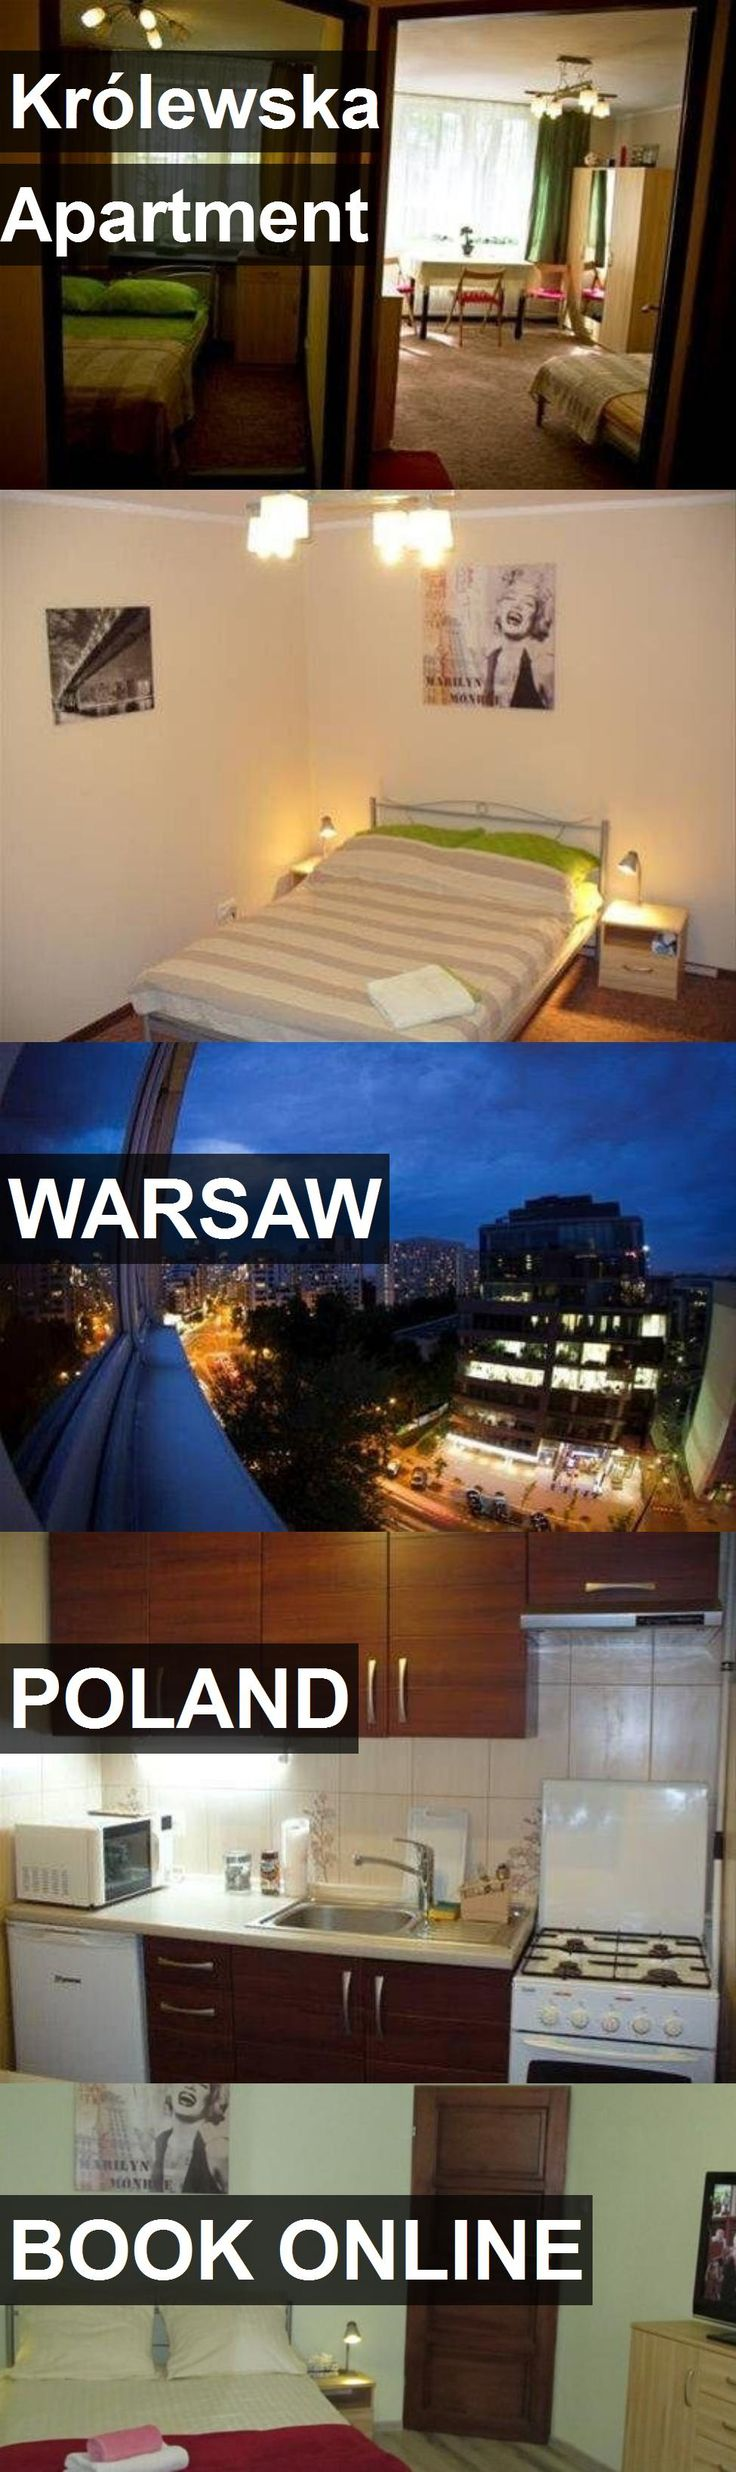 Hotel Królewska Apartment in Warsaw, Poland. For more information, photos, reviews and best prices please follow the link. #Poland #Warsaw #KrólewskaApartment #hotel #travel #vacation